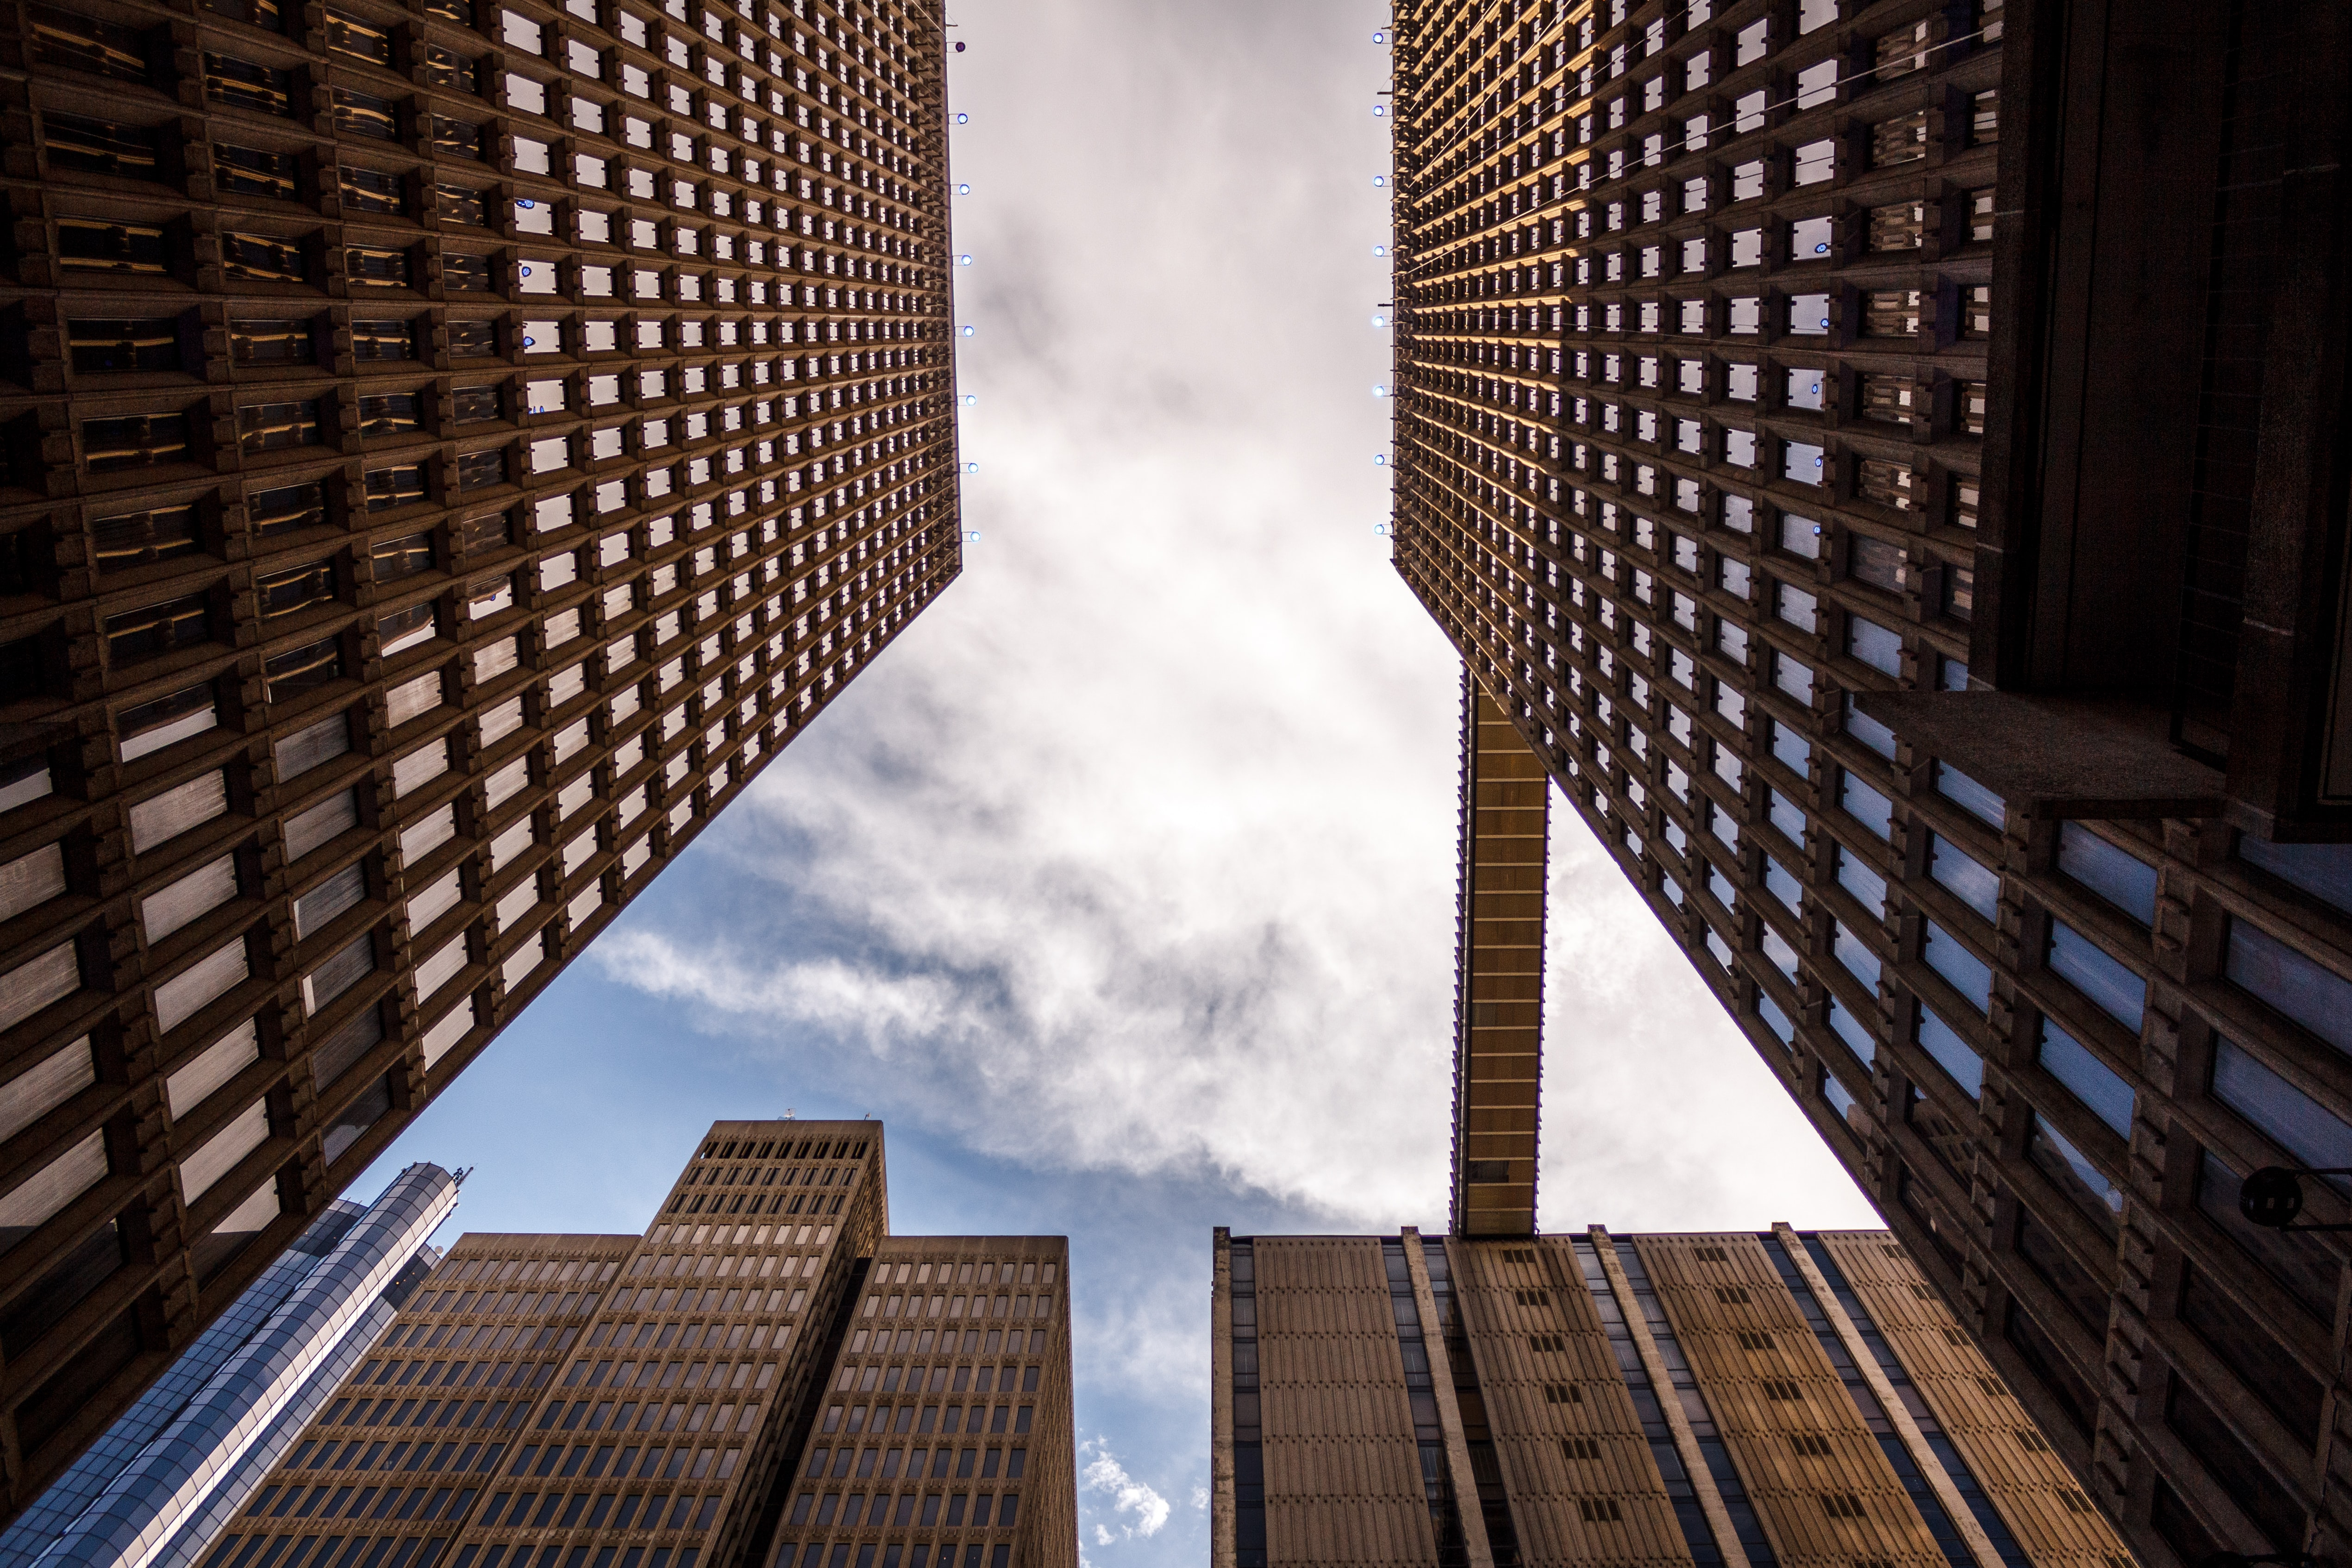 A low-angle shot of the skybridge connecting the roofs of two high-rises in Atlanta